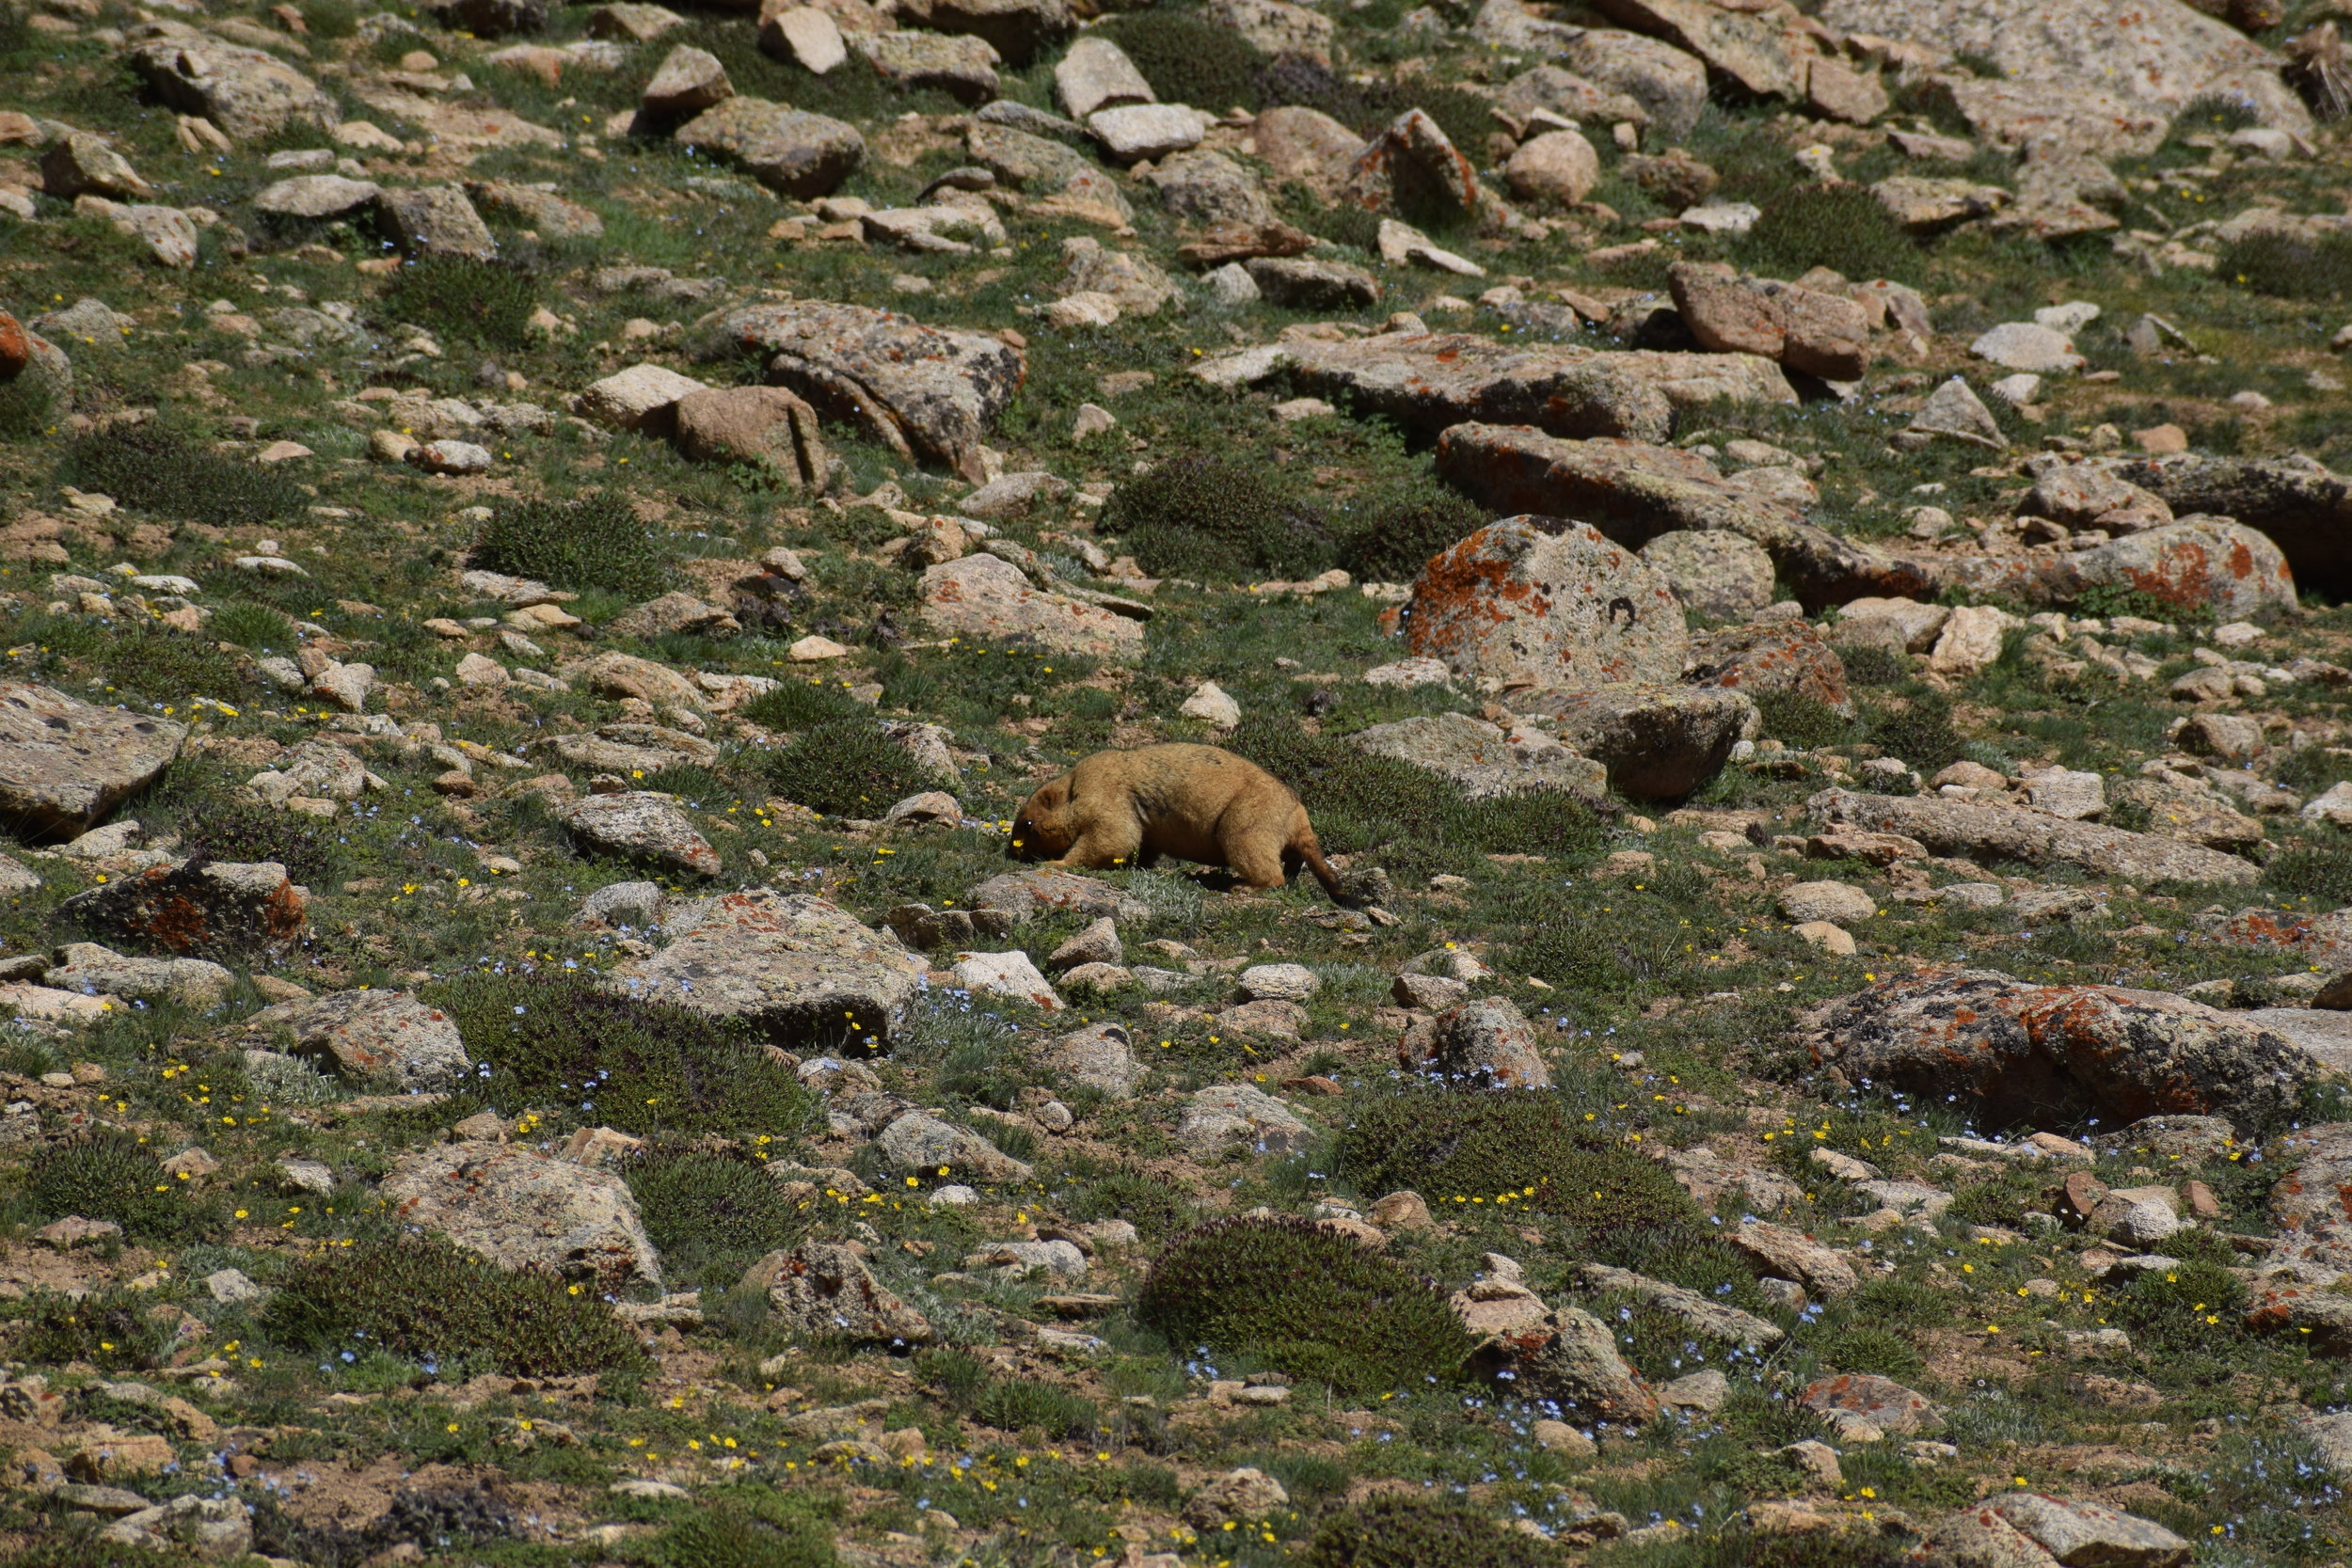 The Himalayan marmot eating wildflowers.